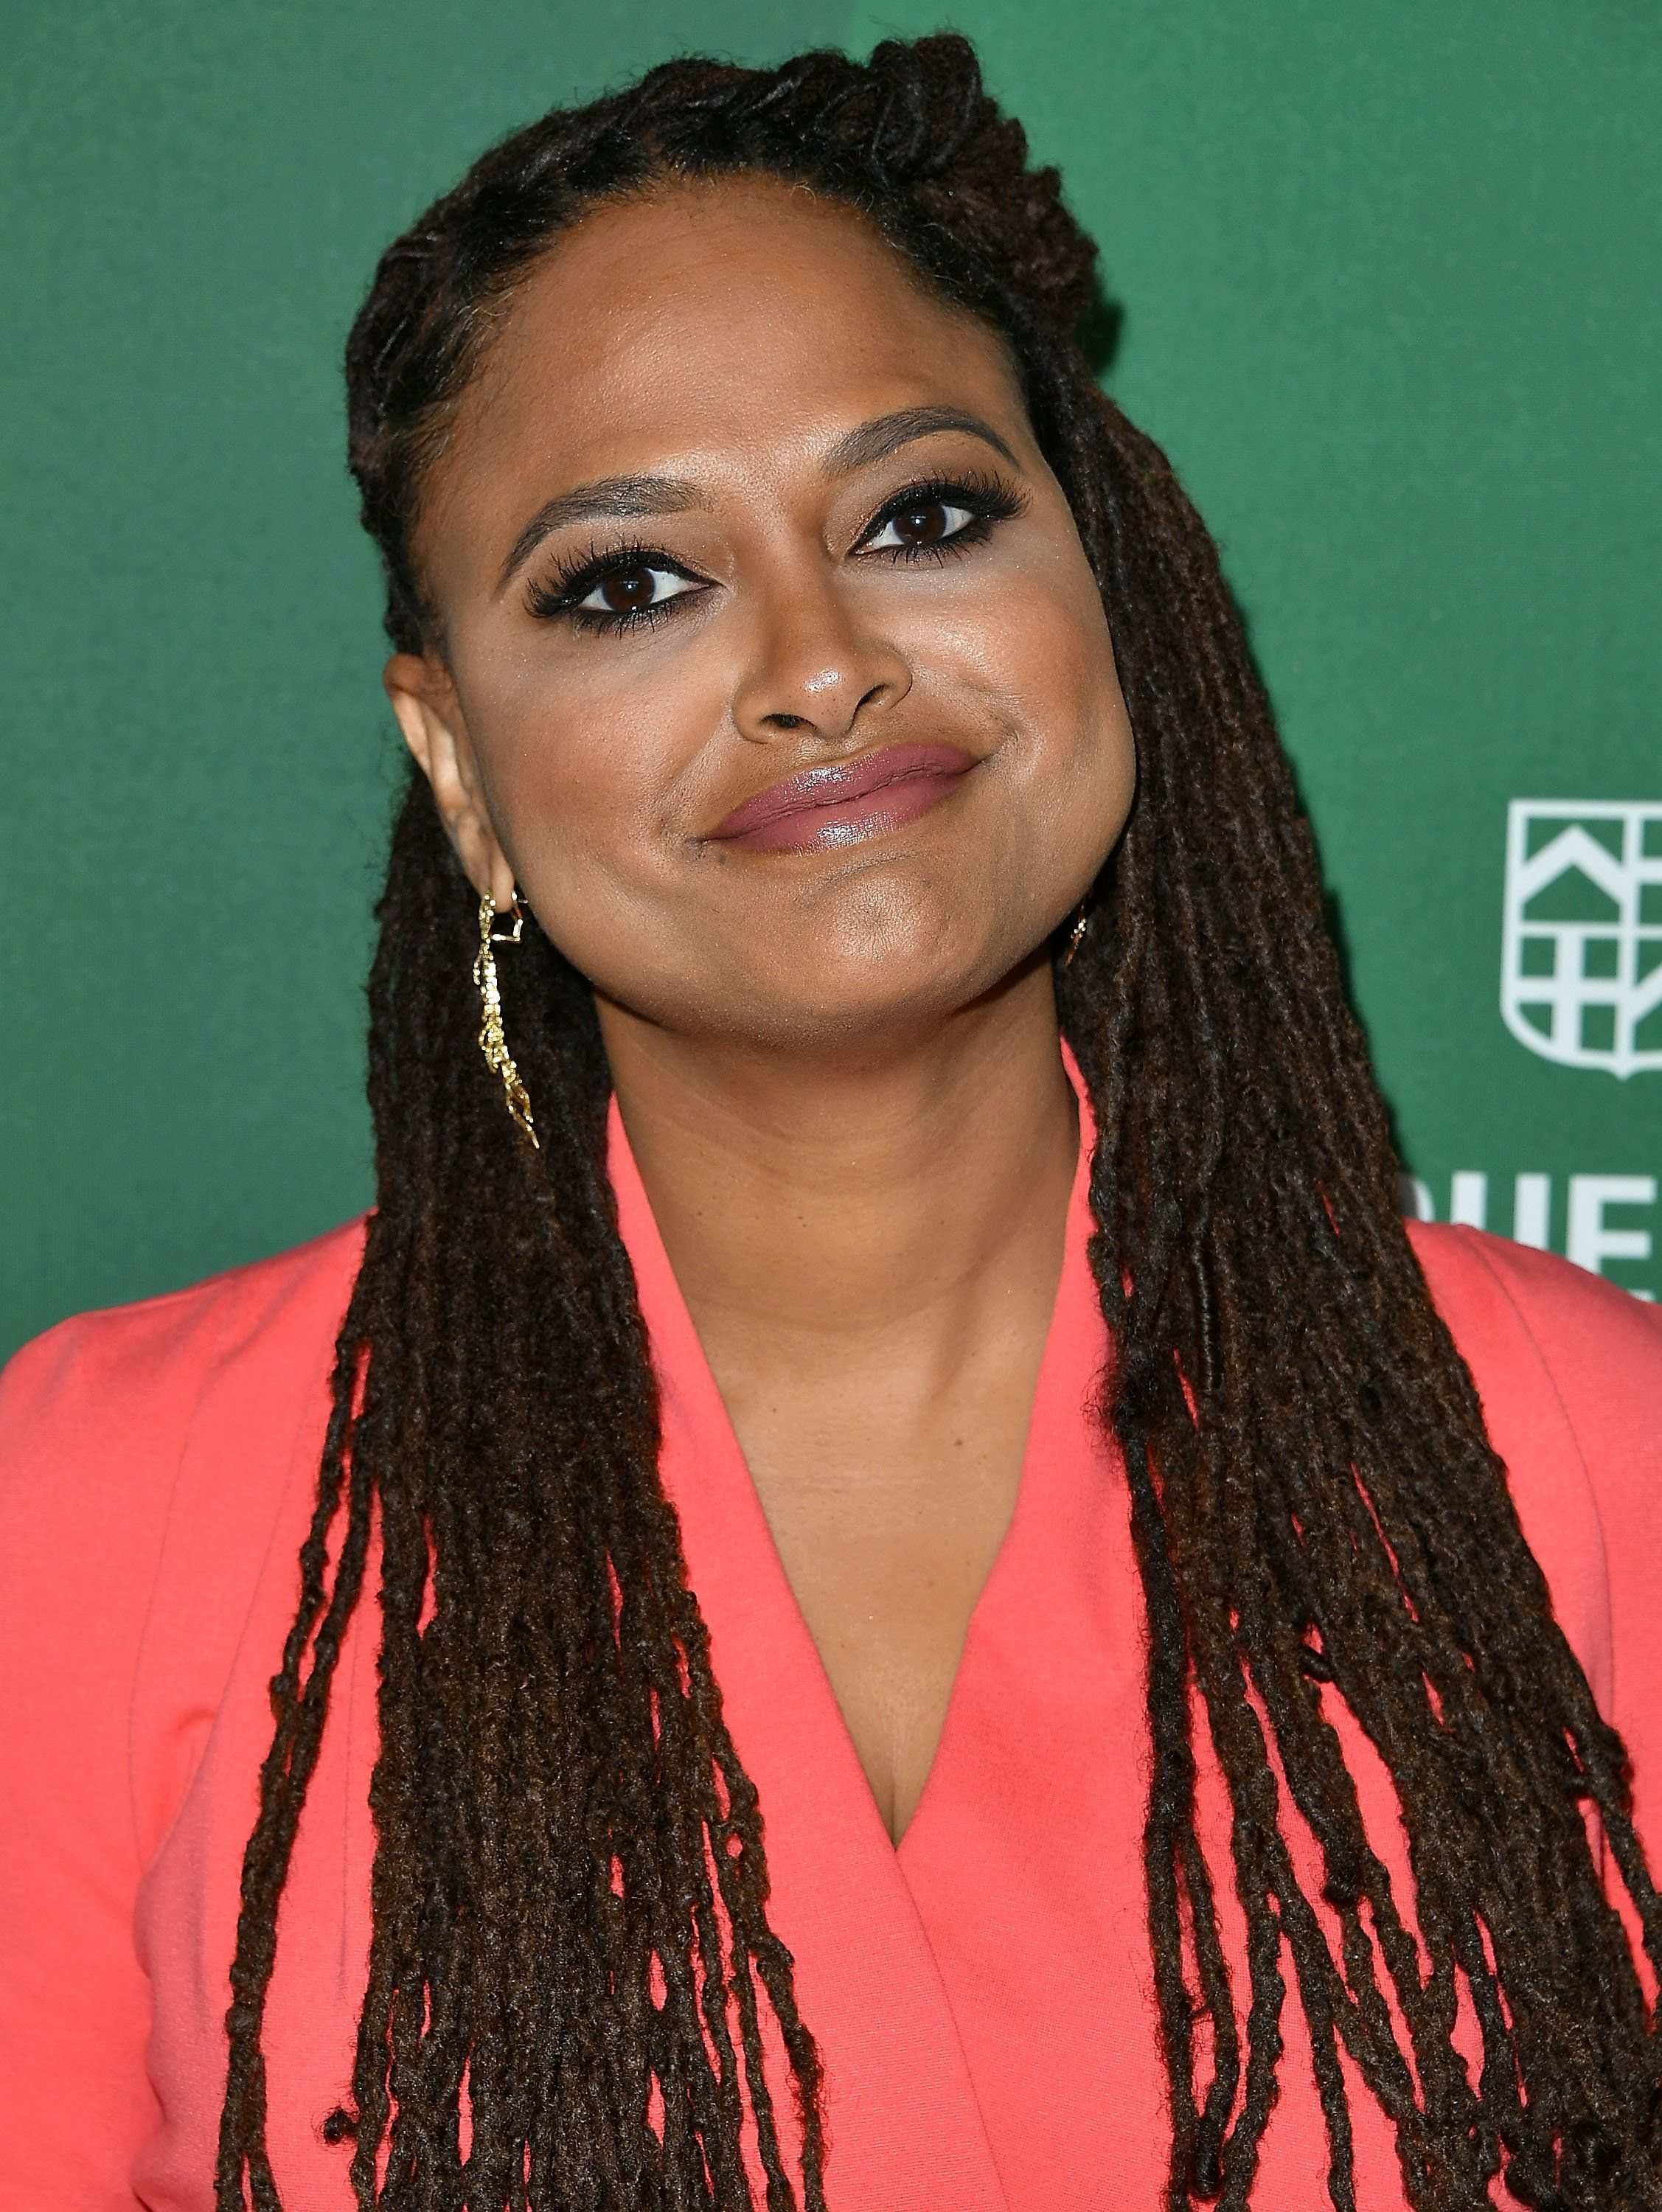 BEVERLY HILLS, CA - OCTOBER 14:  Ava DuVernay arrives at the Variety's Power Of Women Luncheon 2016 at the Beverly Wilshire Four Seasons Hotel on October 14, 2016 in Beverly Hills, California.  (Photo by Steve Granitz/WireImage)